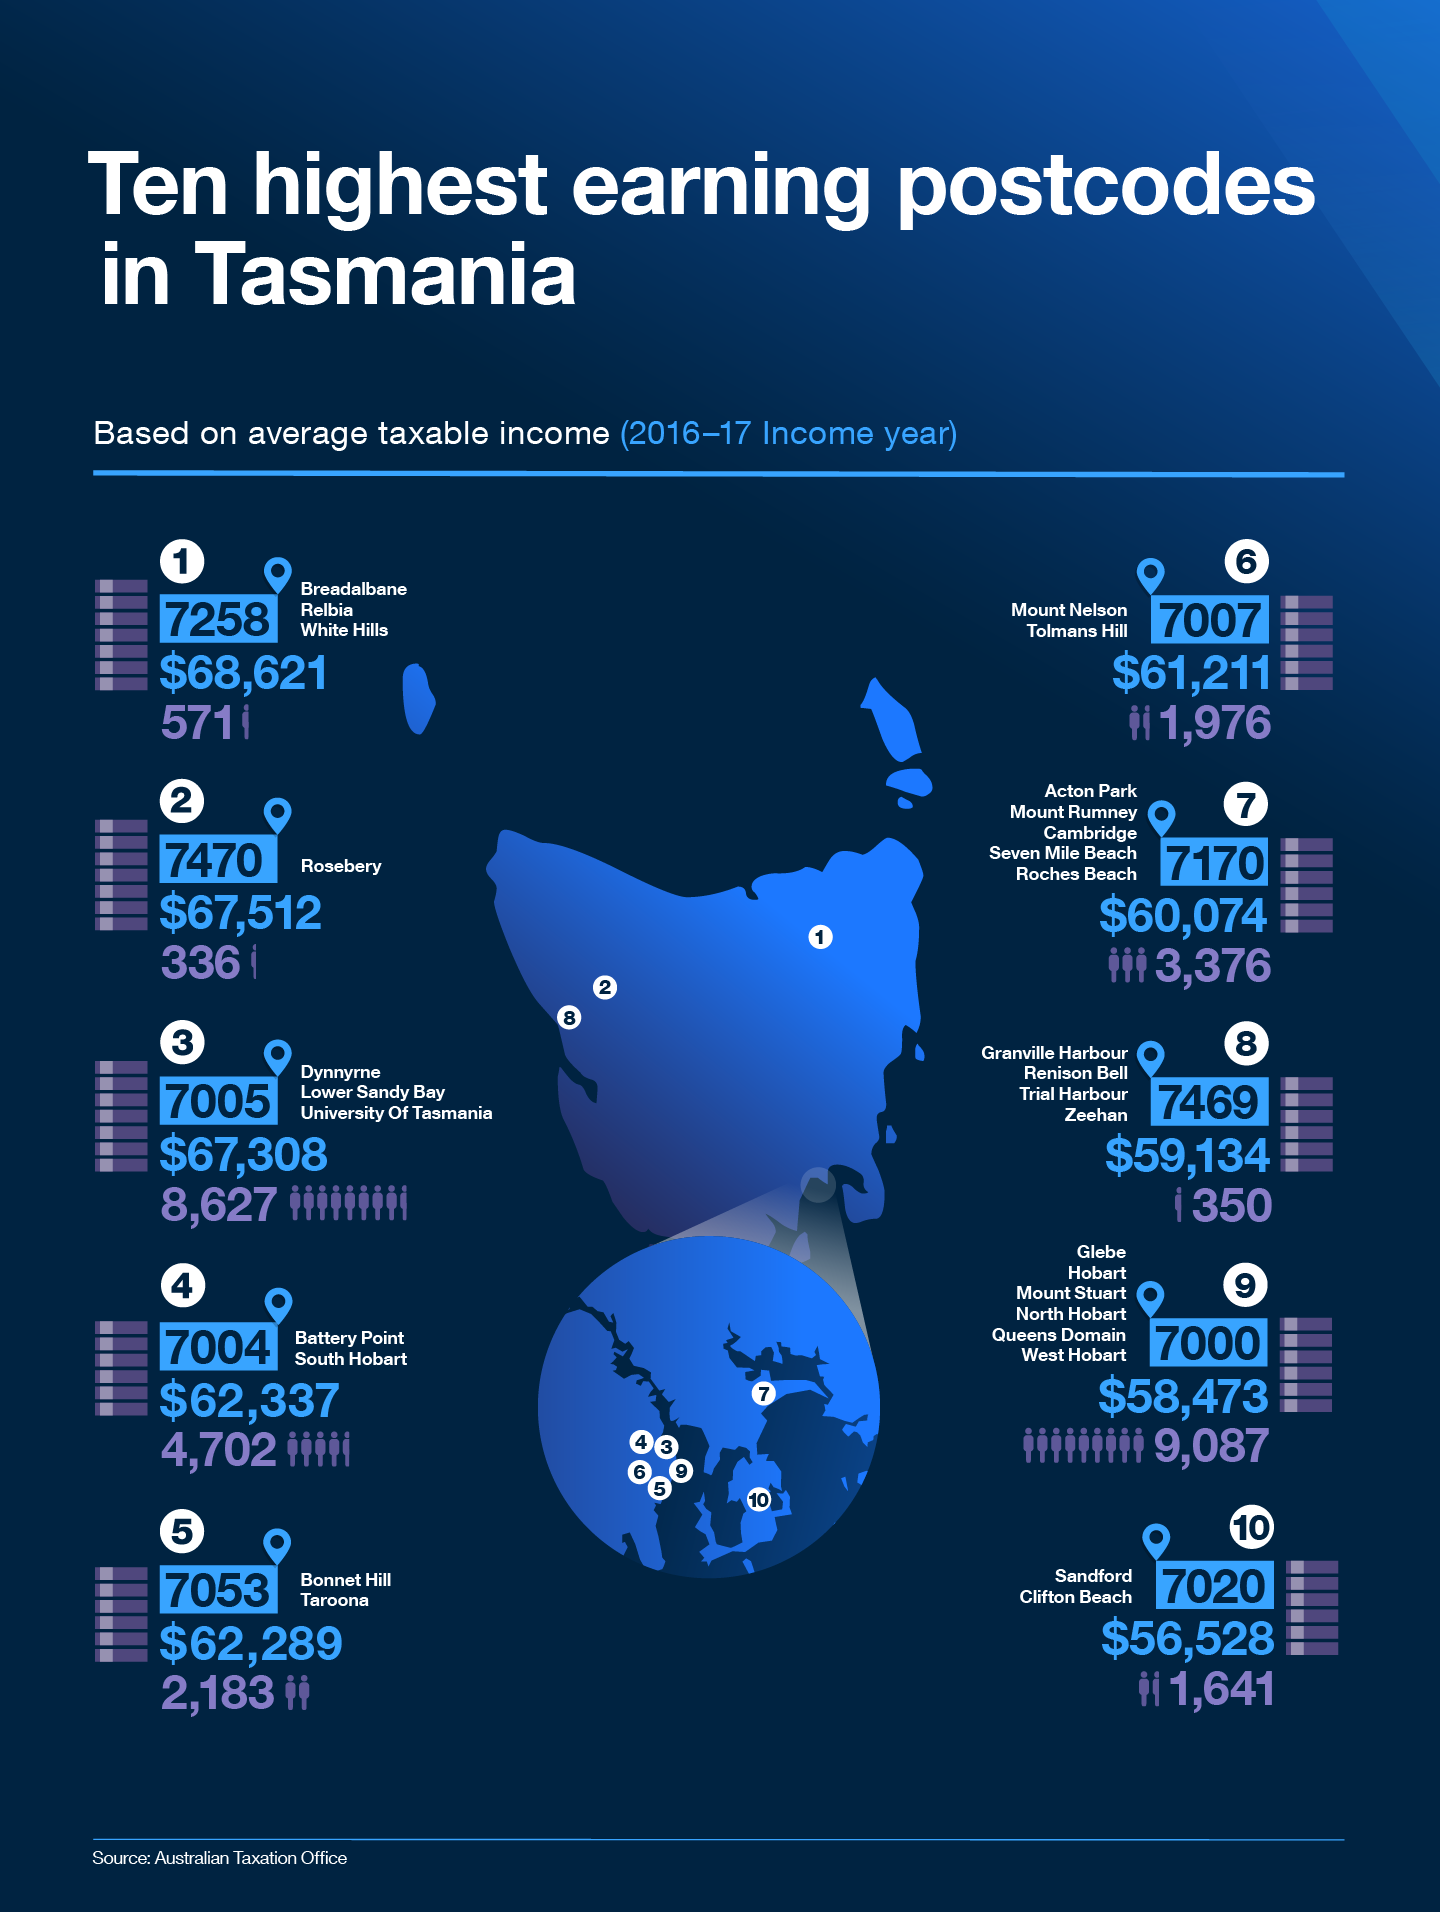 Based on average taxable income (2016-17 Income year)  1. The highest taxable income of $68,621 was recorded in 7258 postcode which covers Breadalbane, Relbia and White Hills.  2. The second highest taxable income of $67,512 was recorded in 7470 postcode which covers Rosebery.  3. The third highest taxable income of $67,308 was recorded in 7005 postcode which covers Dynnyrne, Lower Sandy Bay and the University of Tasmania.  4. The fourth highest taxable income of $62,337 was recorded in 7004 postcode which covers Battery Point and South Hobart.  5. The fifth highest taxable income of $62,289 was recorded in 7053 postcode which covers Bonnet Hill and Taroona.  6. The sixth highest taxable income of $61,211 was recorded in 7007 postcode which covers Mount Nelson and Tolmans Hill.  7. The seventh highest taxable income of $60,074 was recorded in 7170 postcode which covers Acton Park, Mount Rumney, Cambridge, Seven Mile Beach and Roches Beach.  8. The eighth highest taxable income of $59,134 was recorded in 7469 postcode which covers Granville Harbour, Renison Bell, Trial Harbour and Zeehan.   9. The ninth highest taxable income of $58,473 was recorded in 7000 postcode which covers Glebe, Hobart, Mount Stuart, North Hobart, Queens Domain and West Hobart.  10. The tenth highest taxable income of $56,528 was recorded in 7020 postcode which covers Sandford and Clifton Beach.